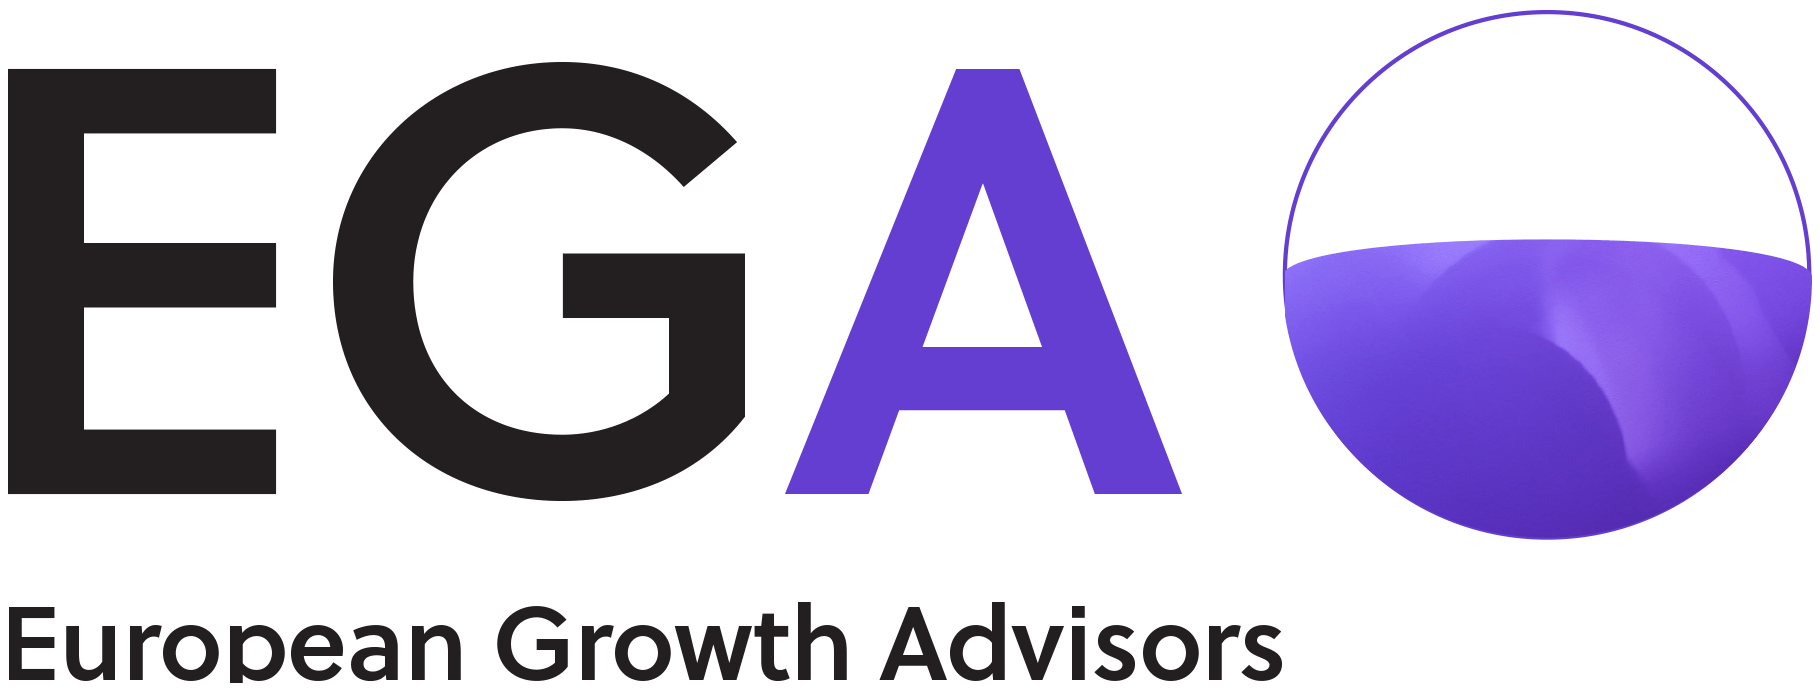 European Growth Advisors